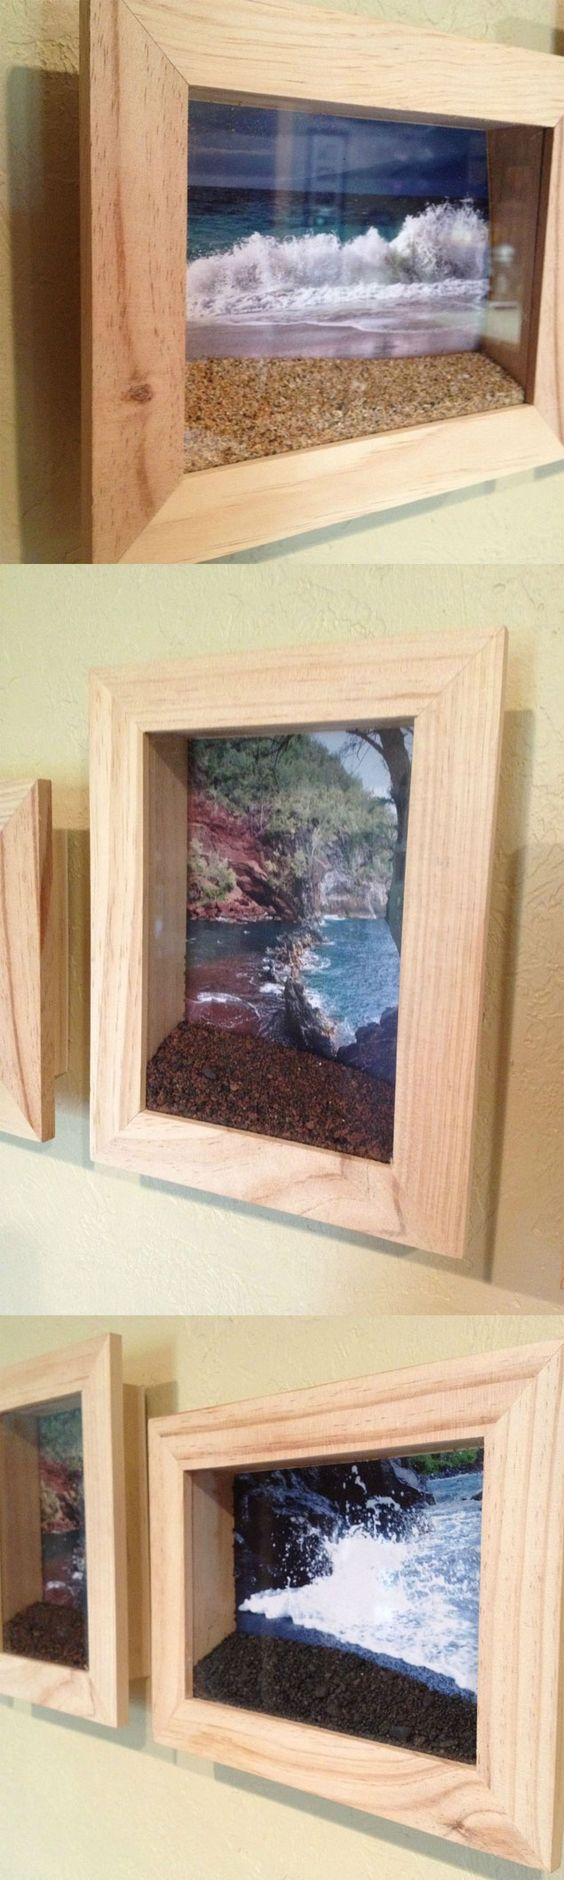 Put a picture of the beach you visited in a shadow box frame and fill the bottom with sand from that beach. Brilliant and much neater than a random jar of sand and shells!